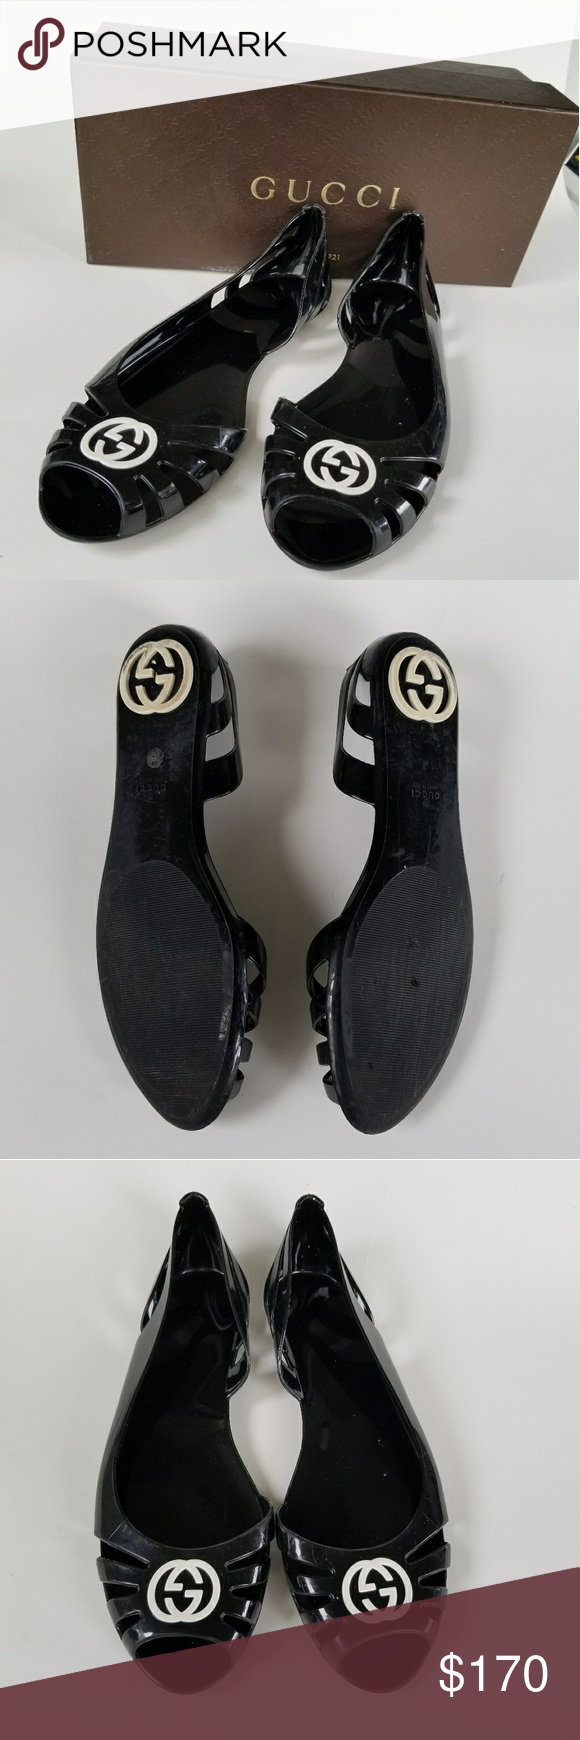 5ffdca8b359d Gucci Jellies! Authentic Gucci black jelly sandals with white monogram. In  great used condition